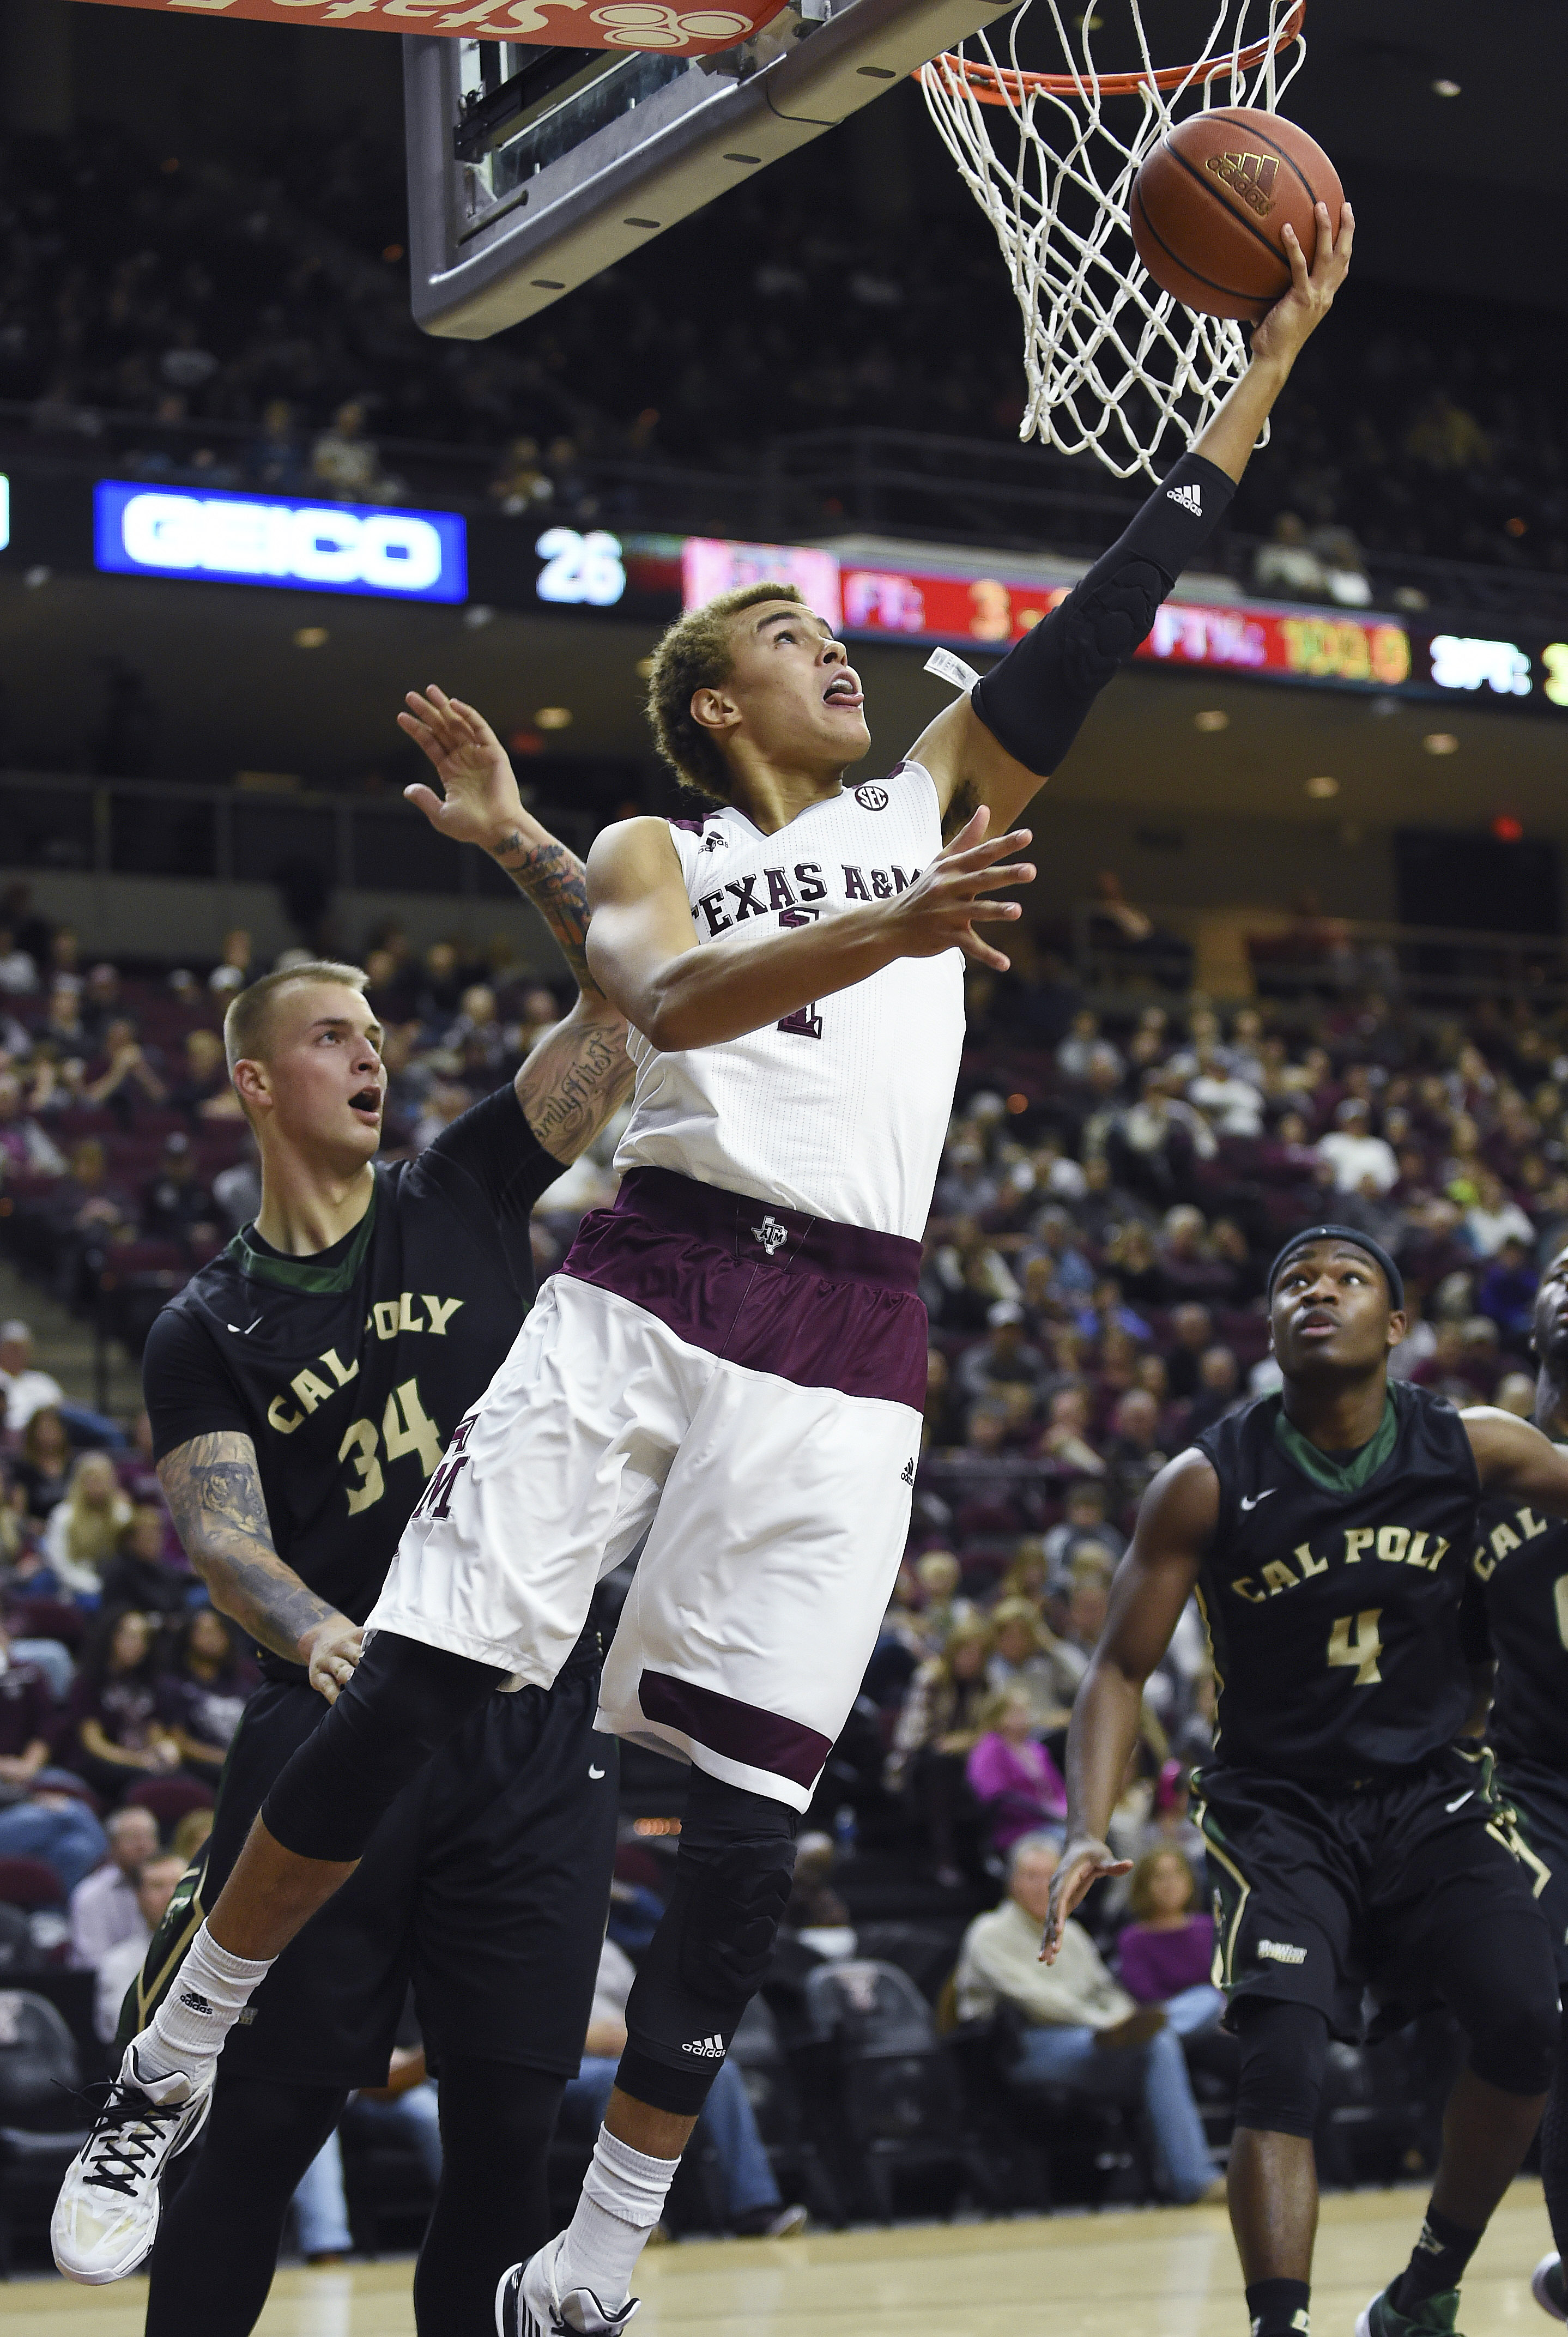 Texas A&M forward DJ Hogg (1) shoots past Cal Poly forward Brian Bennett (34) during the first half of an NCAA college basketball game Tuesday, Dec. 29, 2015, in College Station, Texas. (AP Photo/Eric Christian Smith)